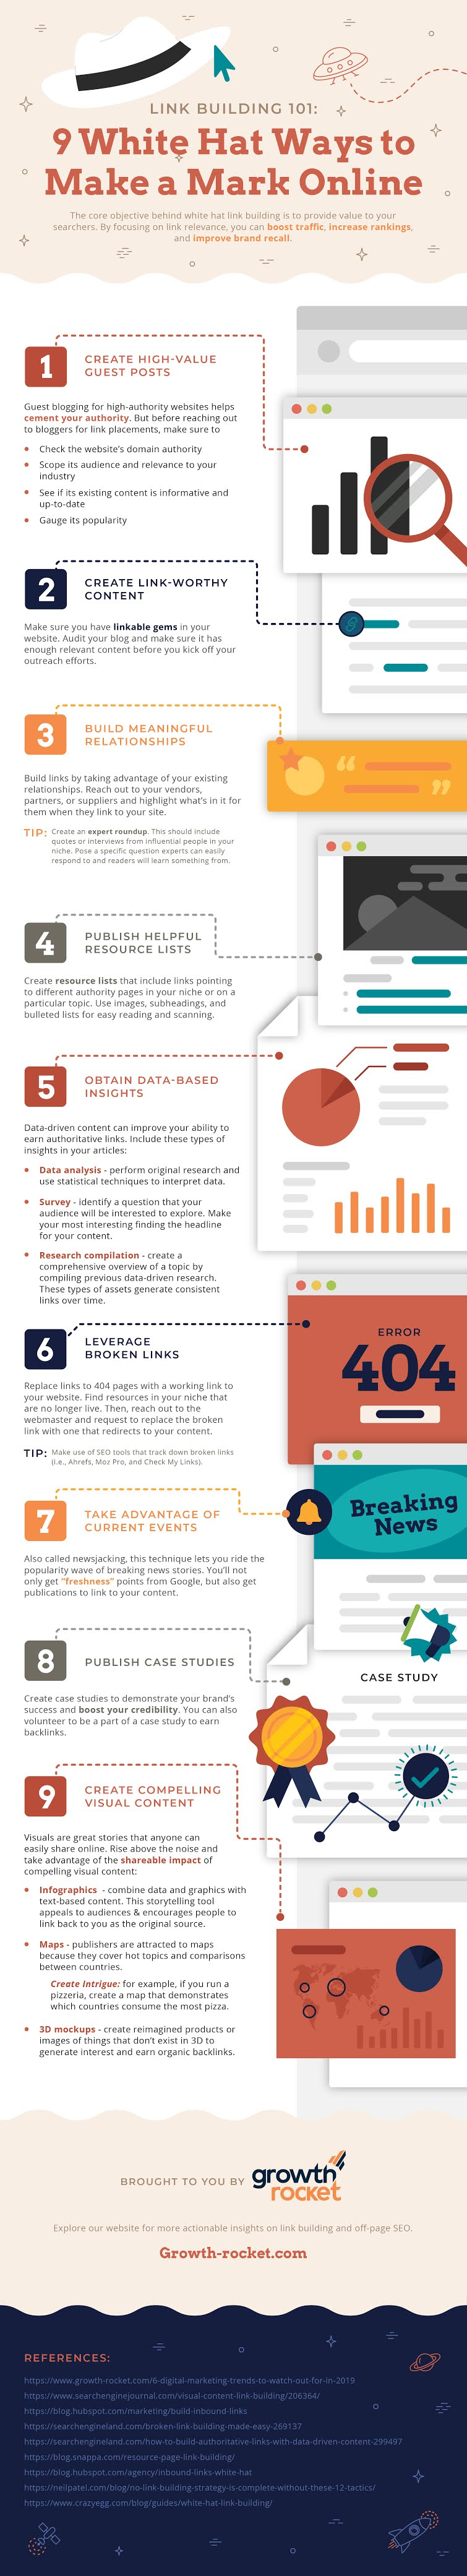 Link Building 101: White Hat Ways to Make a Mark Online #infographic